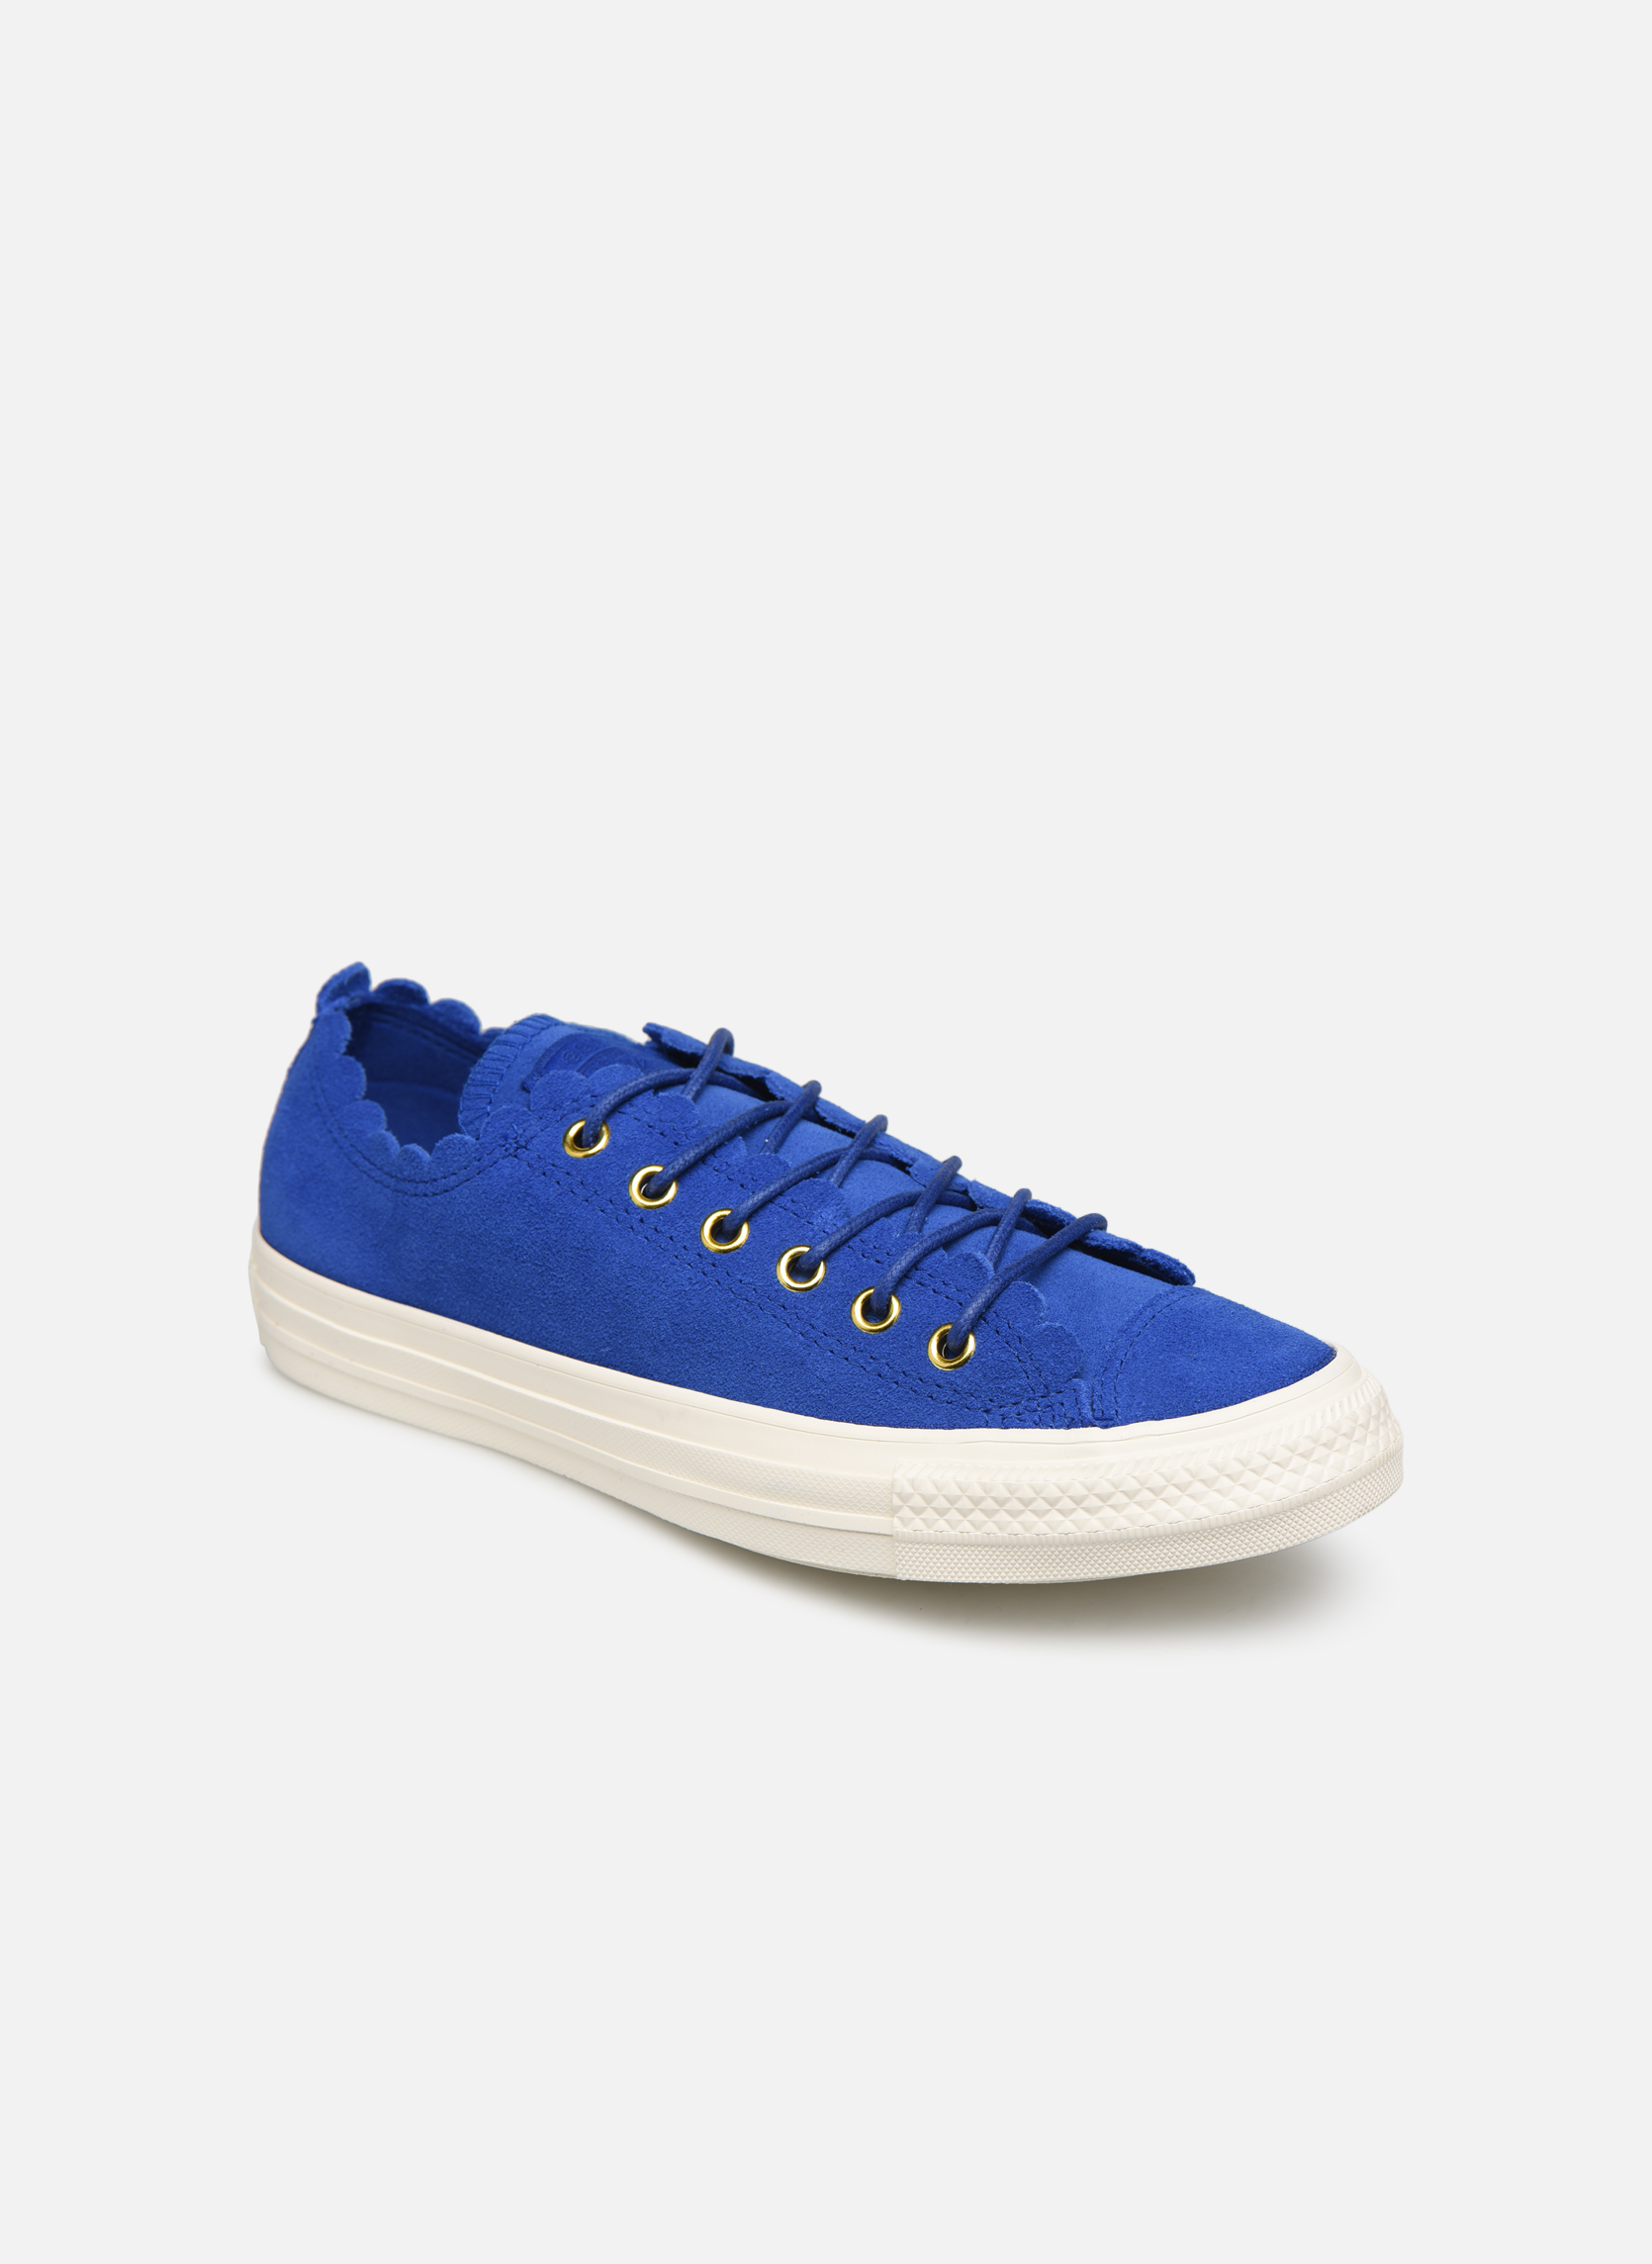 Sneakers Chuck taylor all star Washed by ConverseConverseBlauwPaar schoenen - Sneakers88875651424441Leer